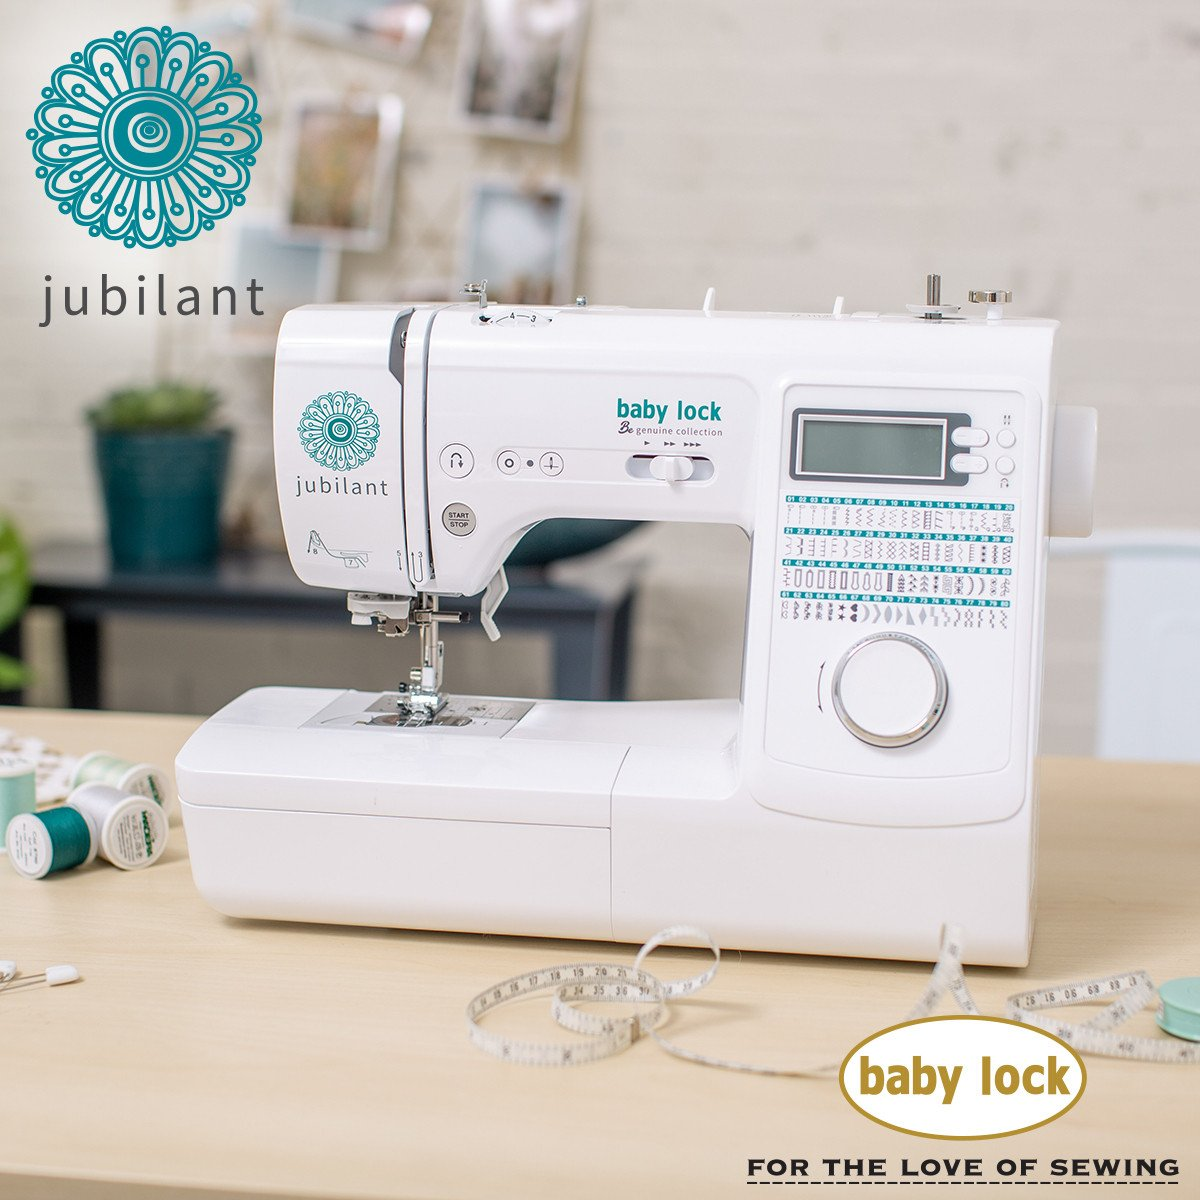 Babylock Jubilant Sewing Machine